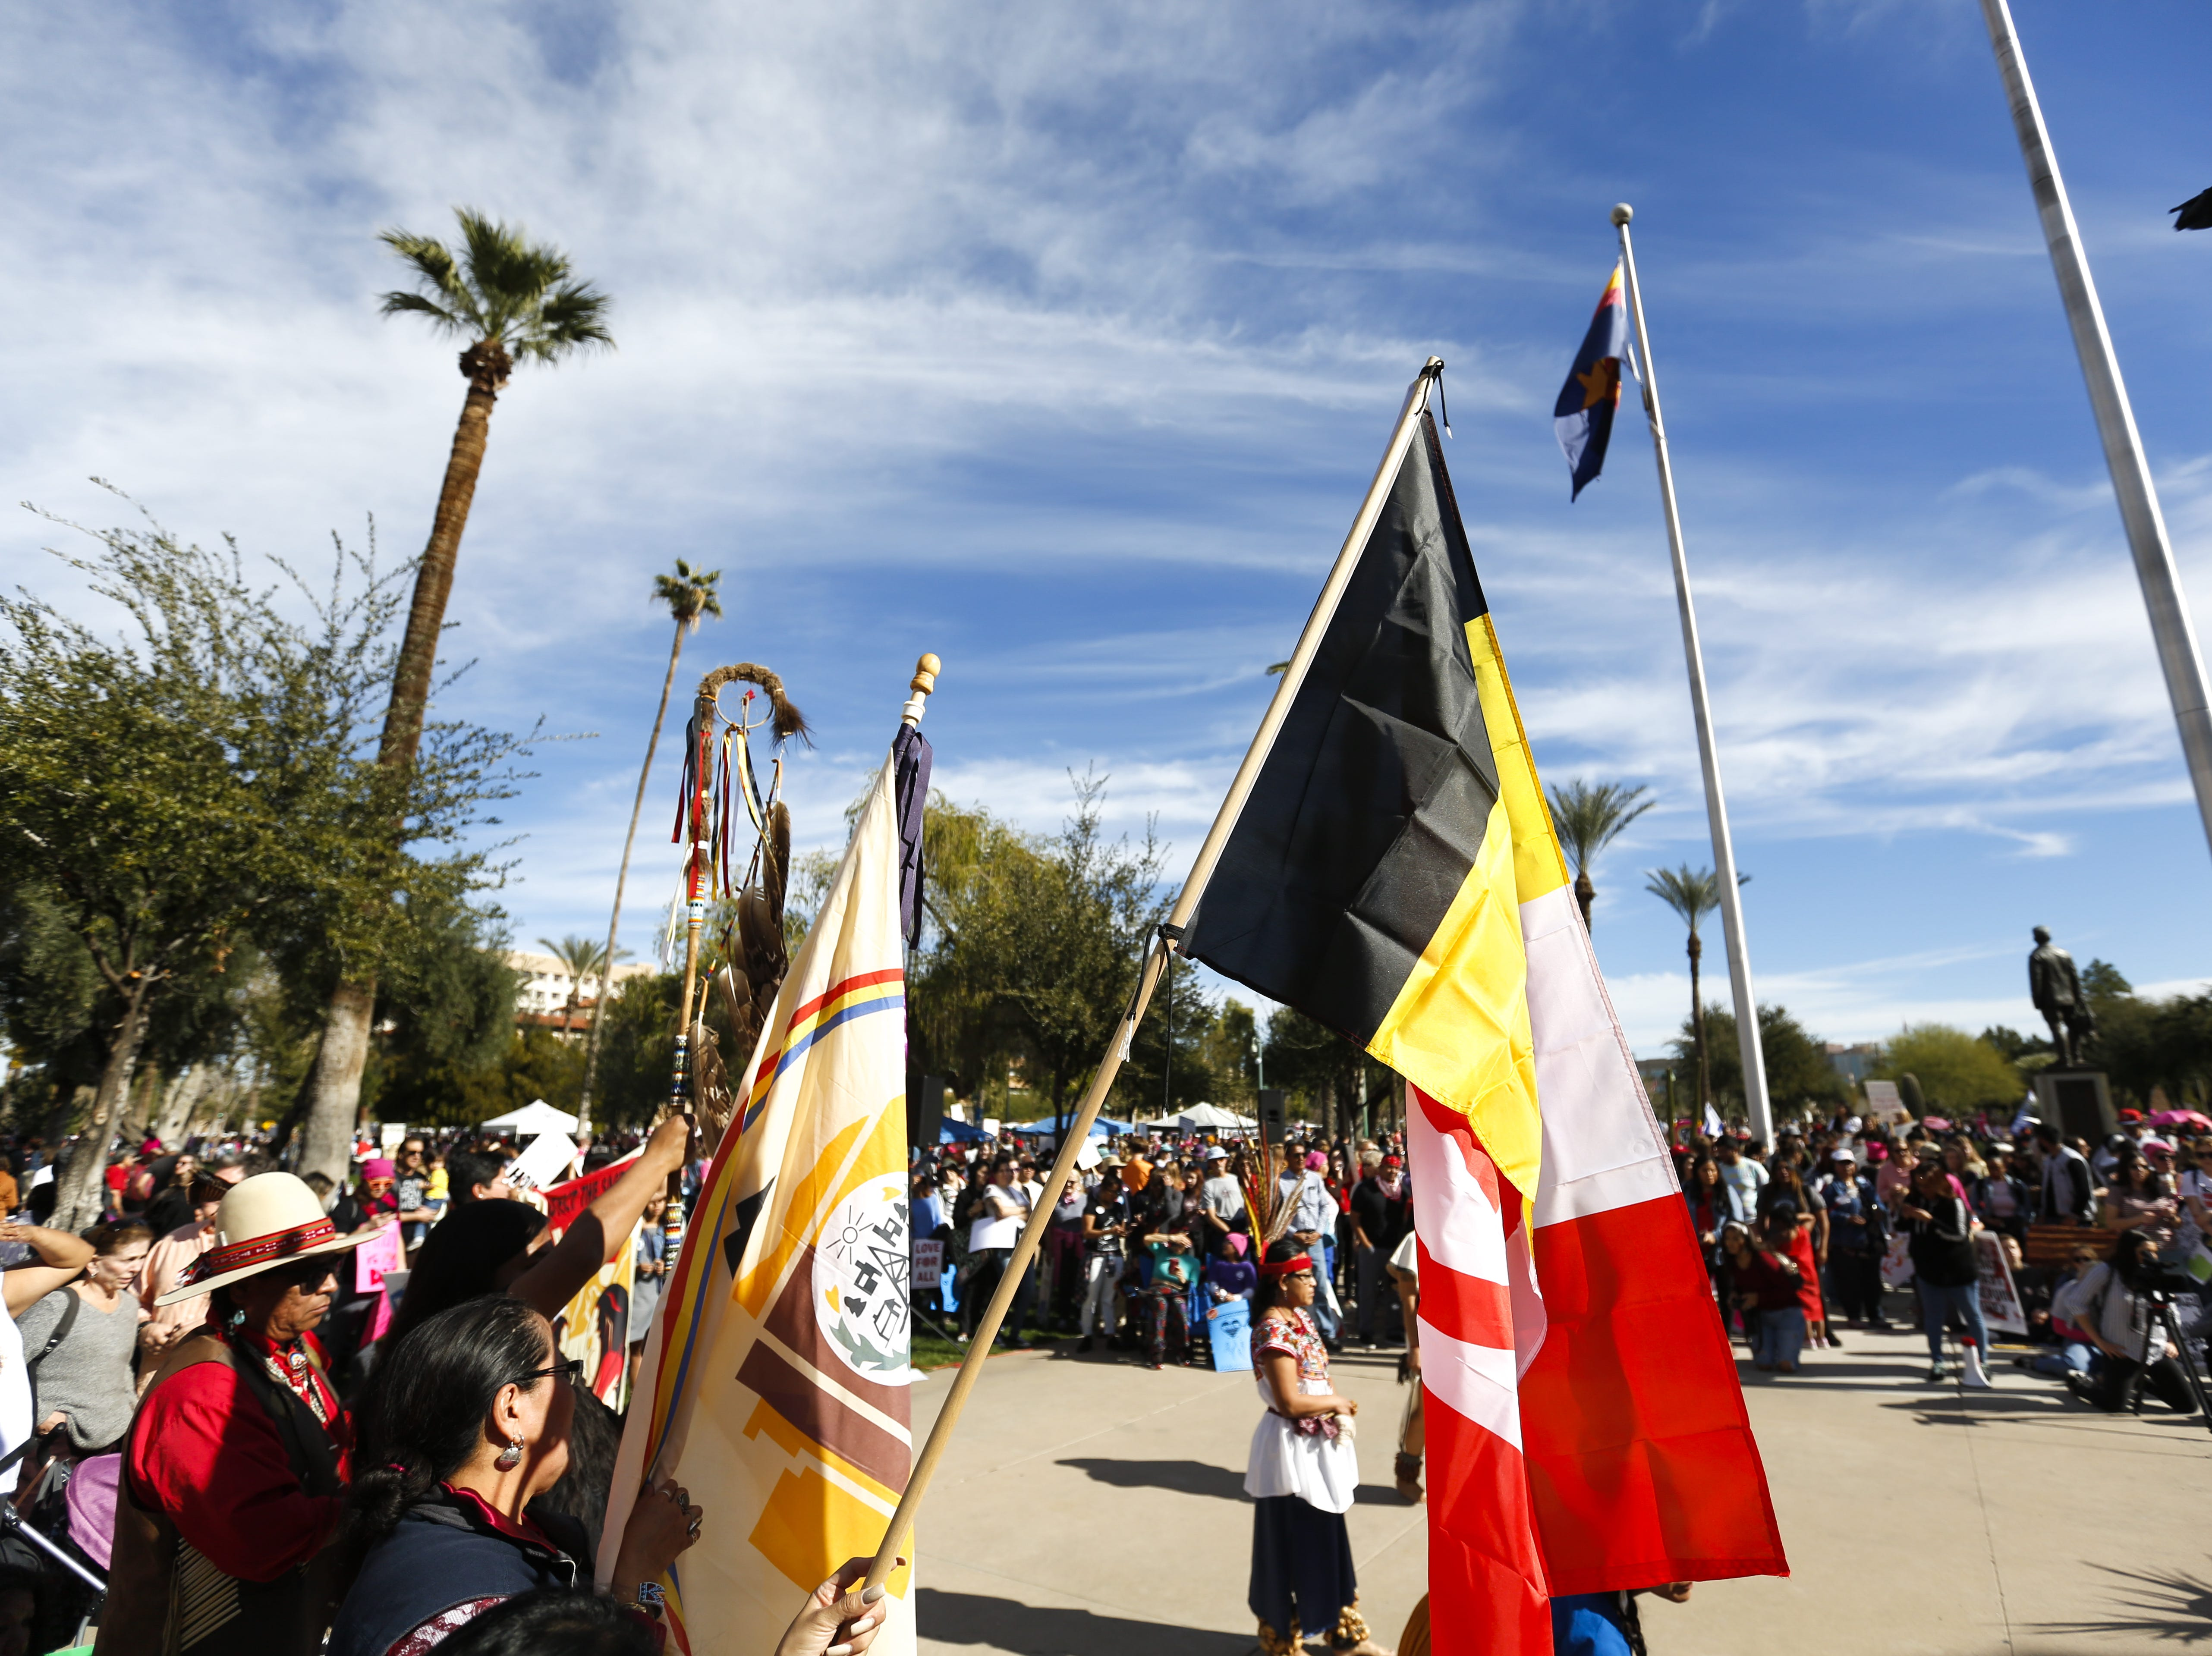 The Huehuecoyotl group performs traditional dances at the Phoenix Women's March on Jan. 19, 2019, at the Arizona Capitol.